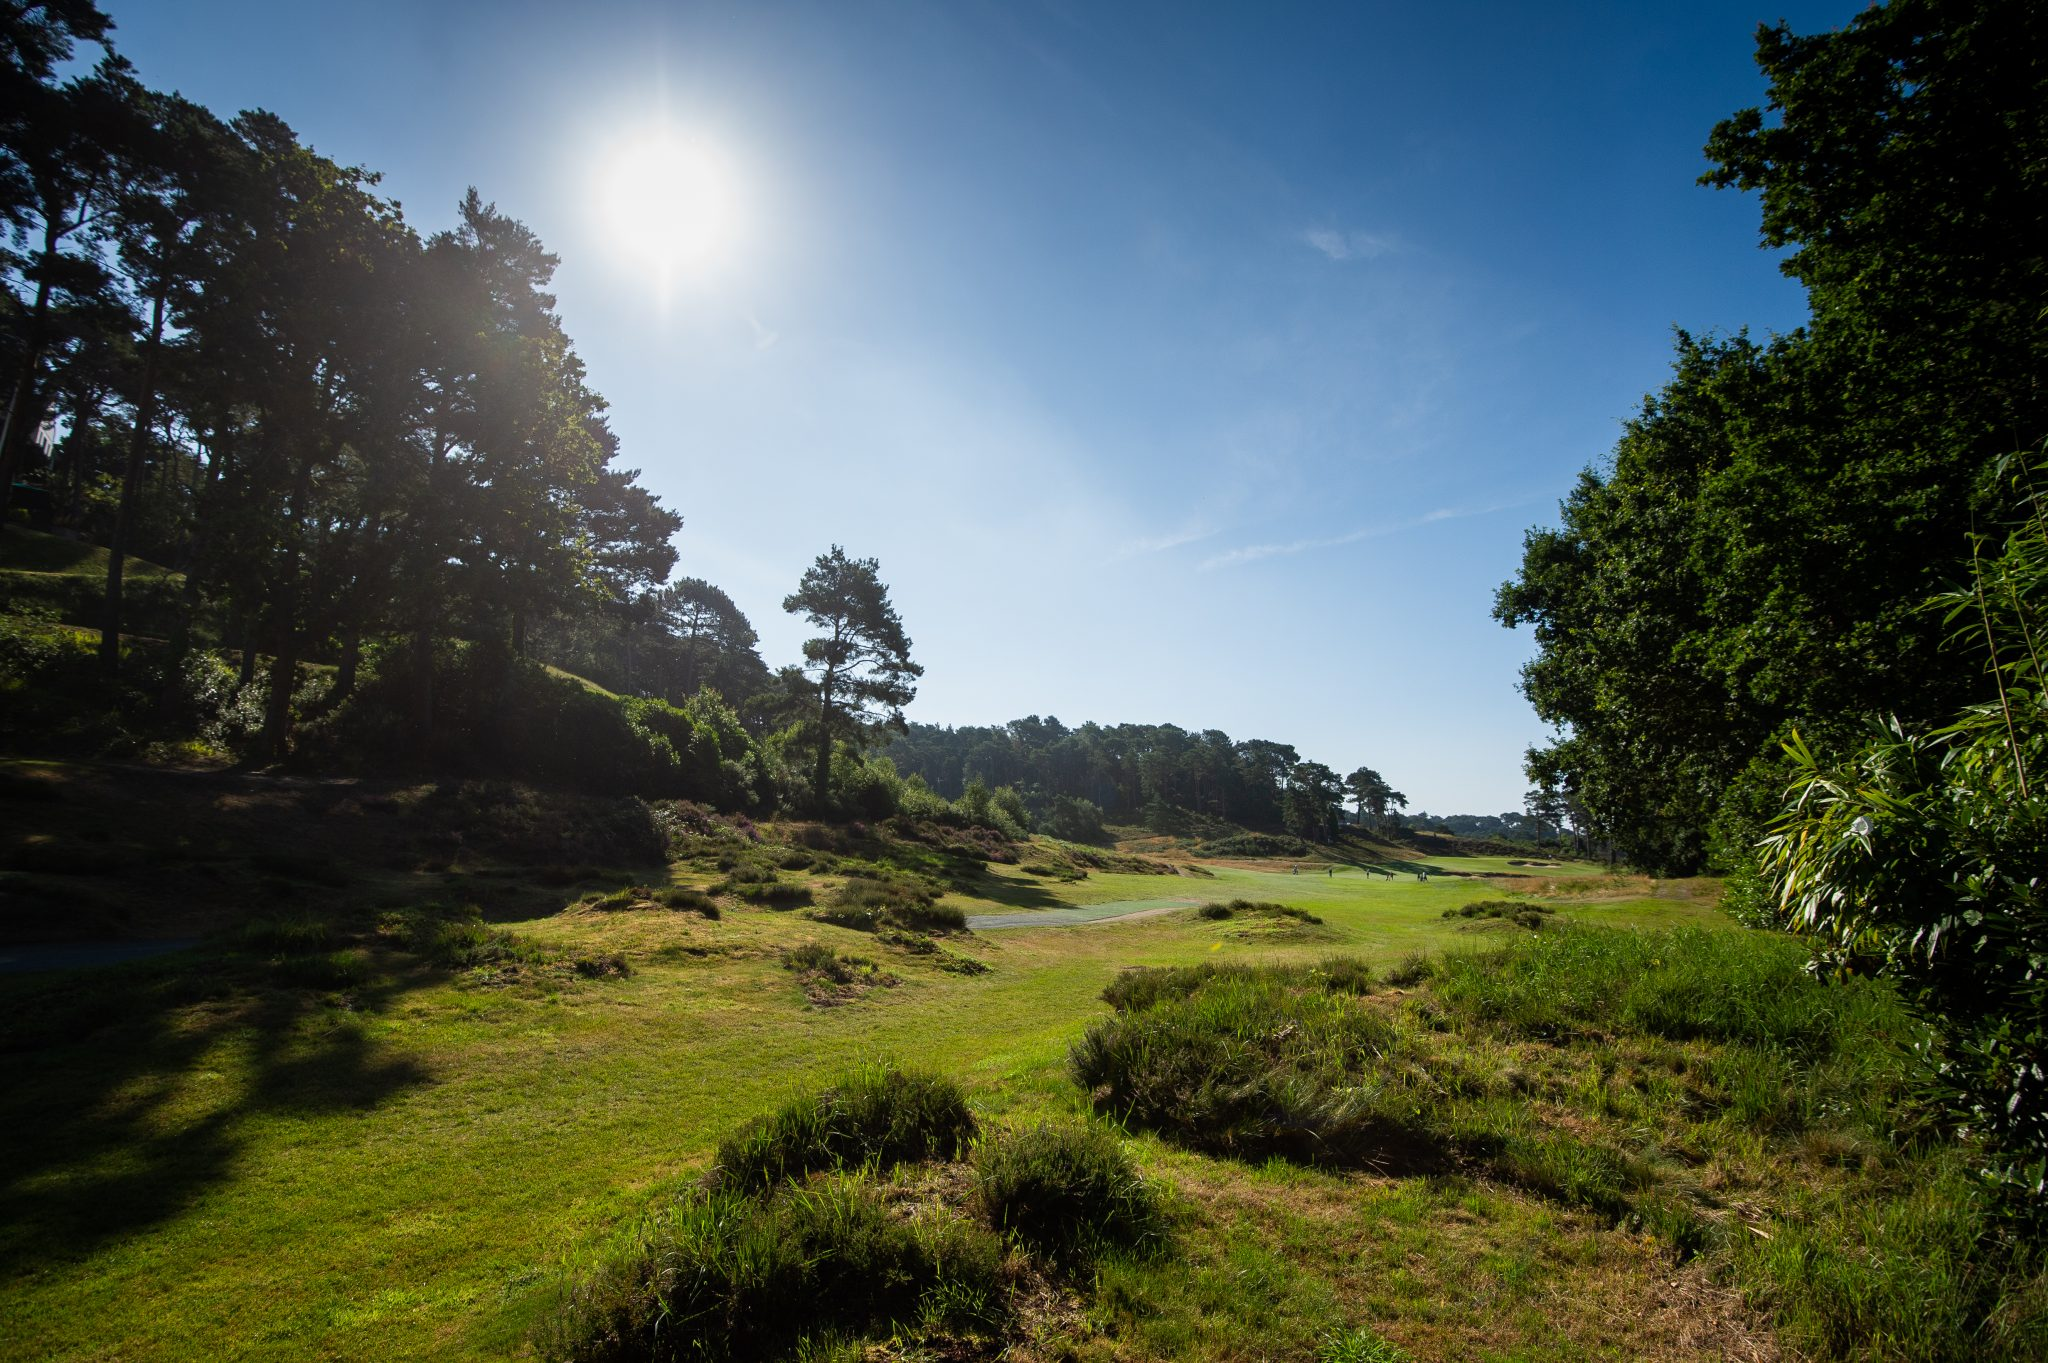 'Golf is shining and that's thanks to you' – Our CEO's letter to golfers and clubs